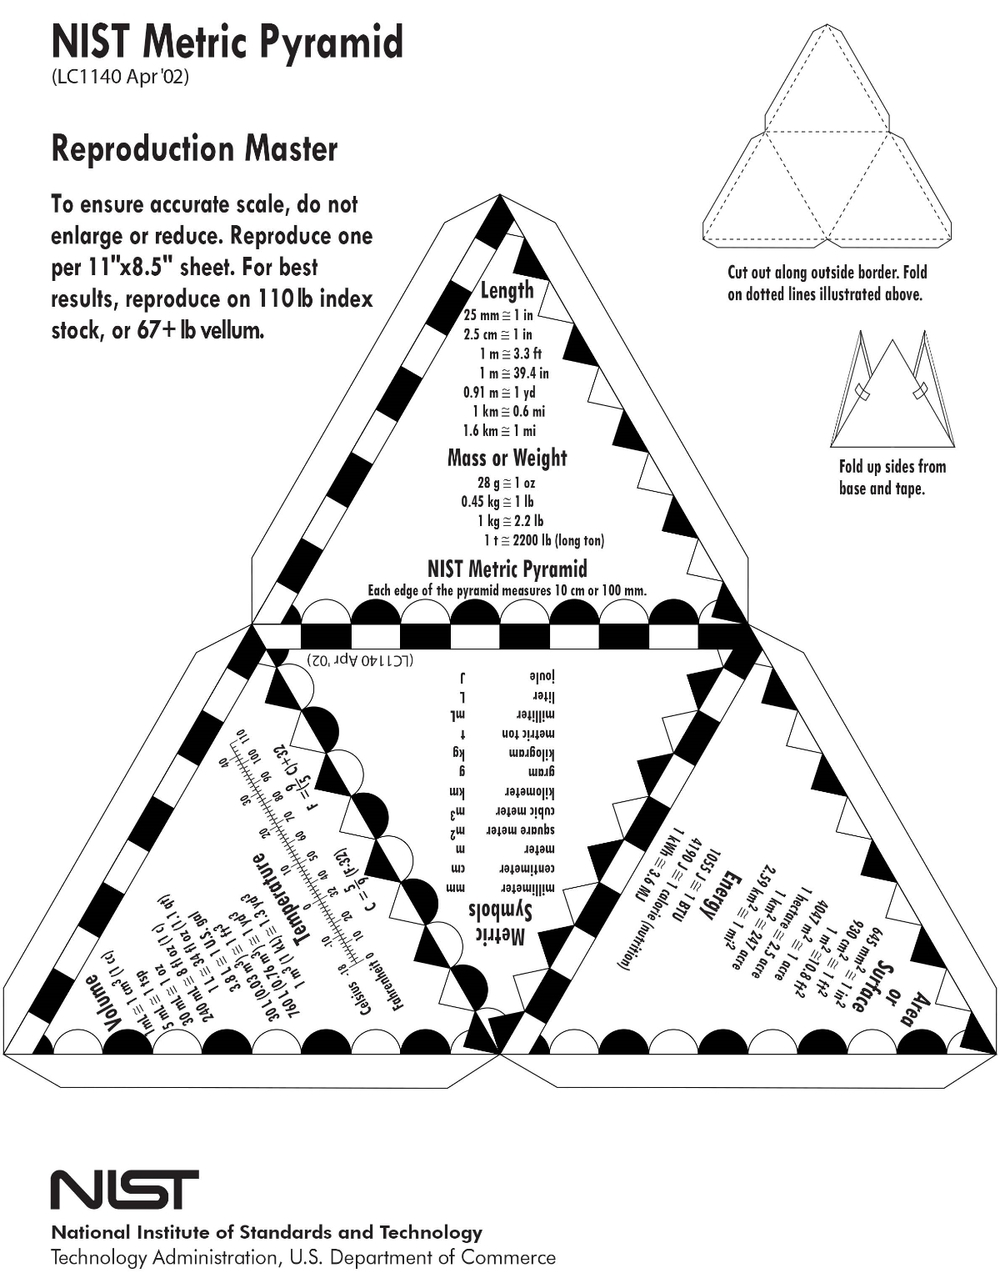 NIST LC 1140 – The Metric Pyramid is a helpful study aid that can be easily constructed with yellow cardstock to keep common approximate unit conversion factors for mass, length, area, volume, temperature, and energy close at hand. Image source:  NIST LC 1140 Metric Pyramid  by The  National Institute of Standards and Technology  (NIST), agency of the U.S. Department of Commerce is licensed under  Public Domain Mark 1.0